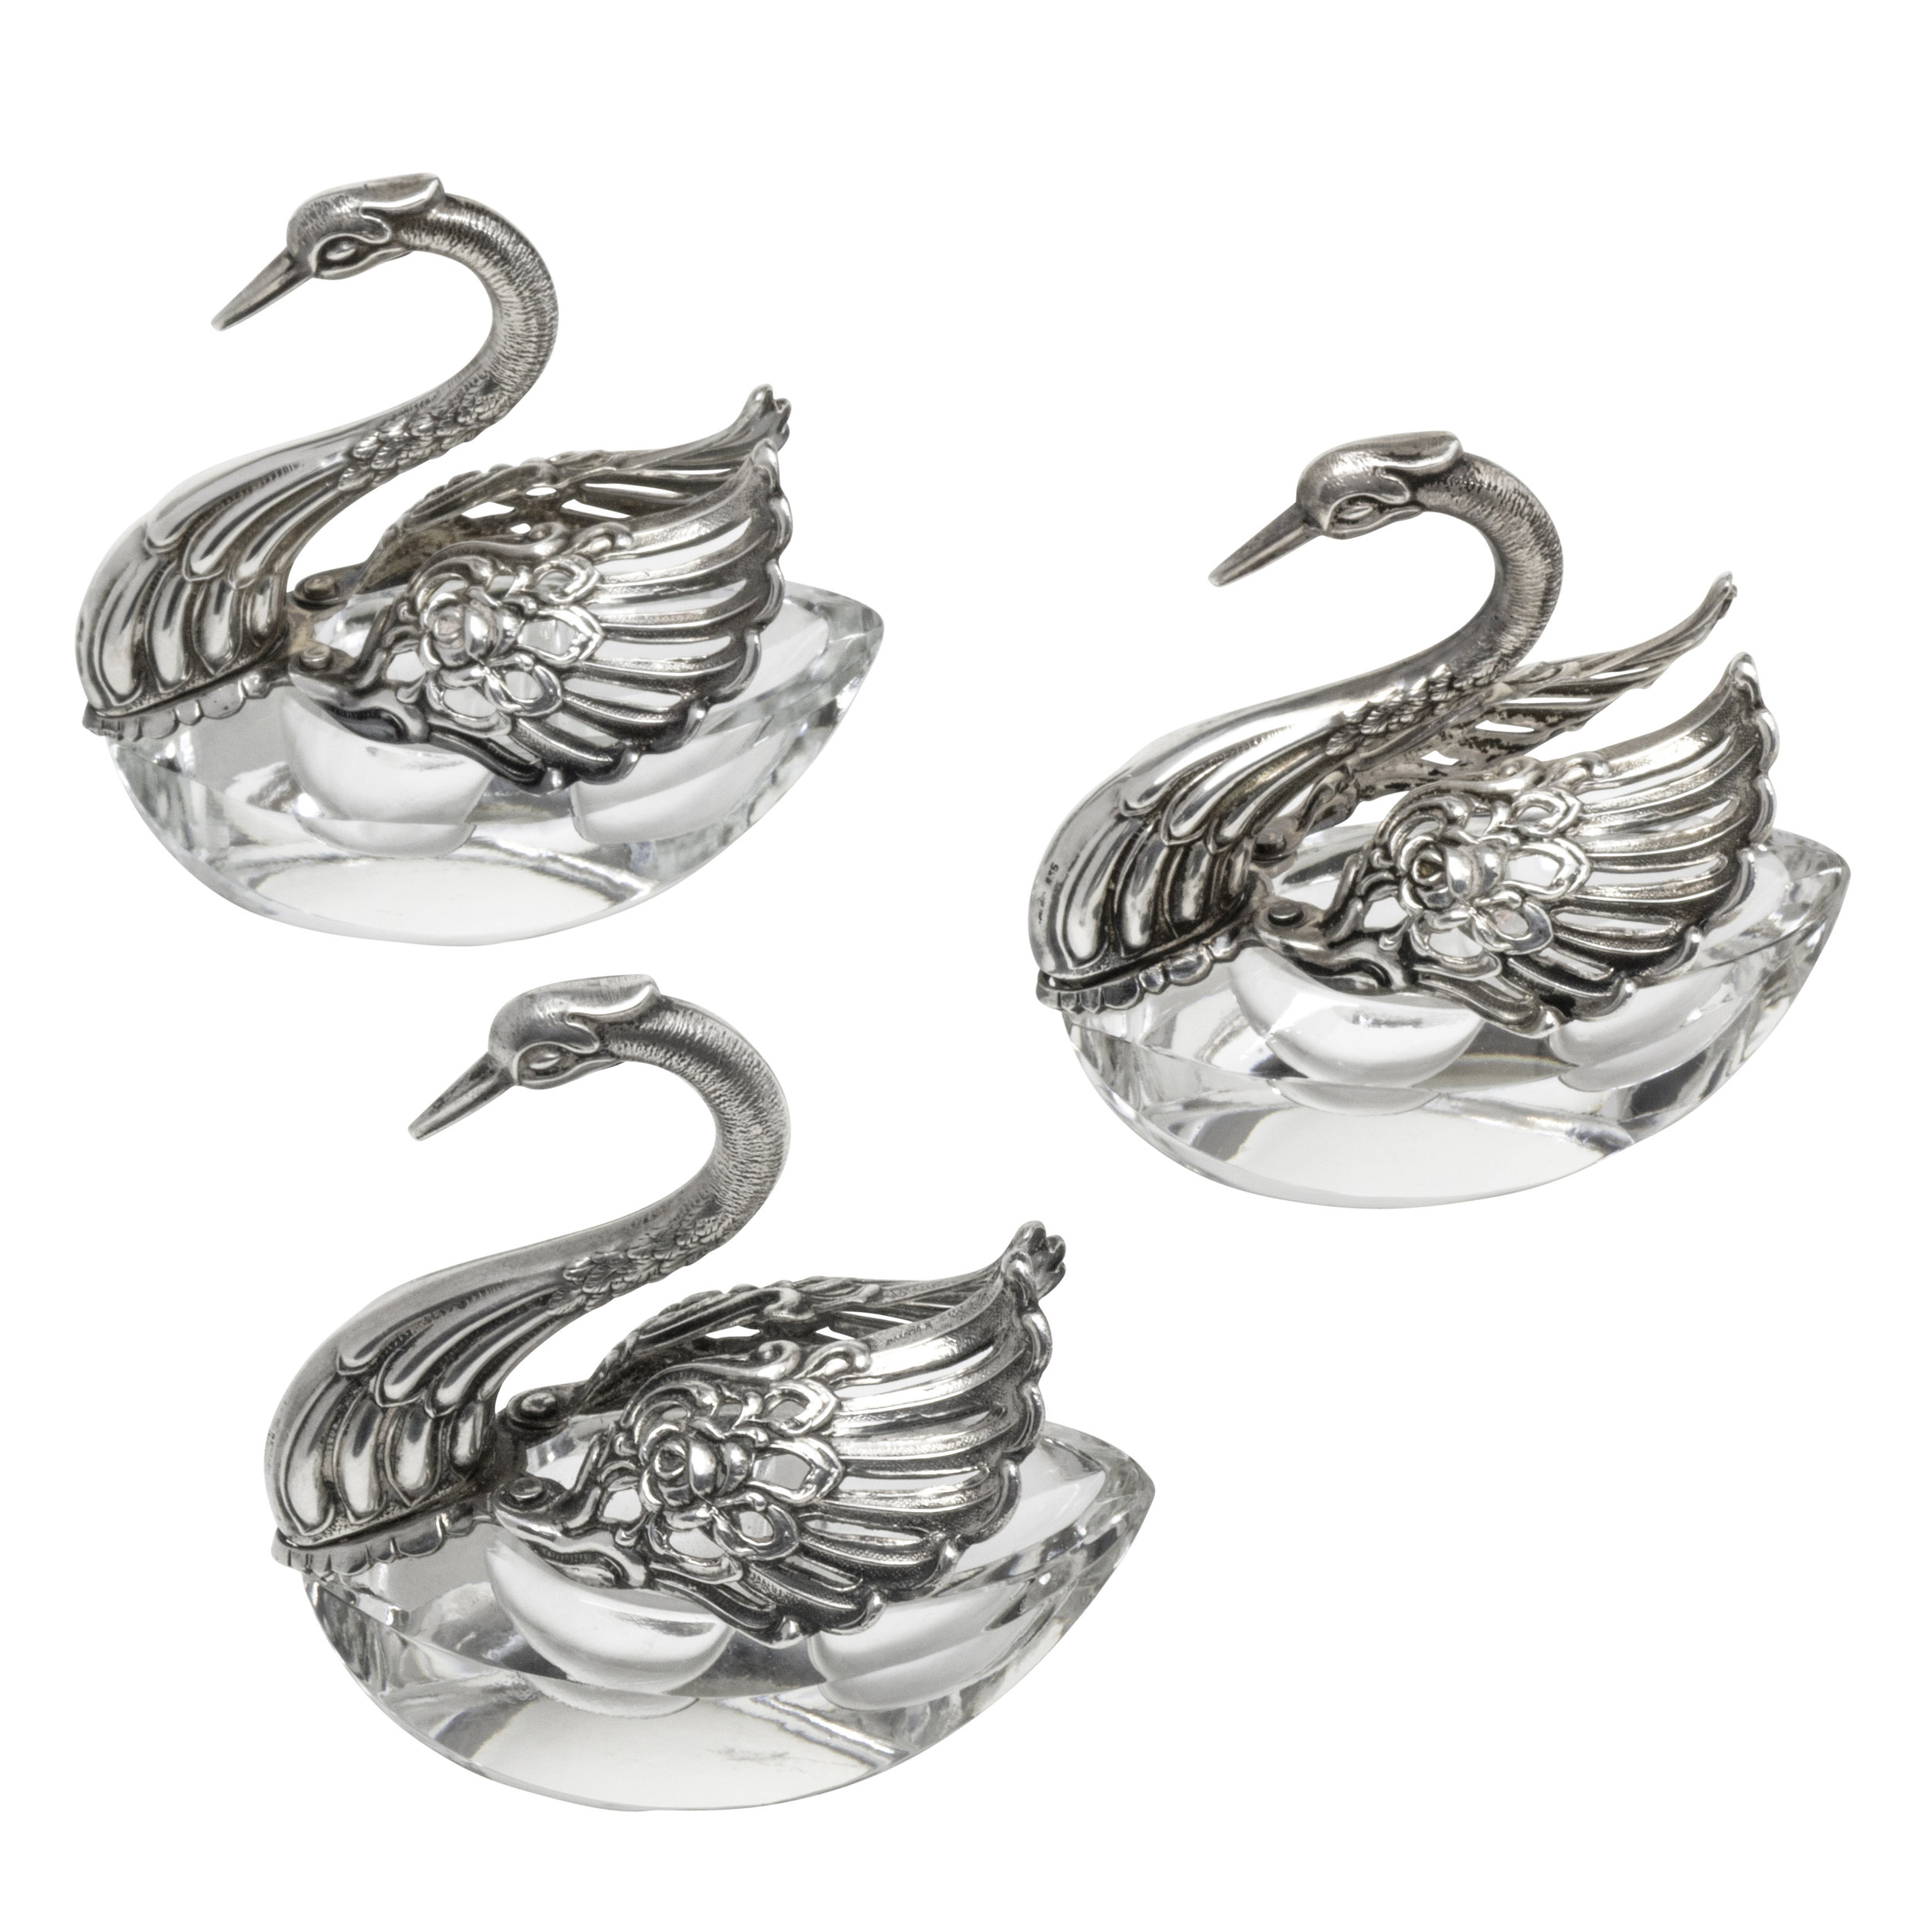 Swans-Silver & Crystal-6595-Edit.jpg